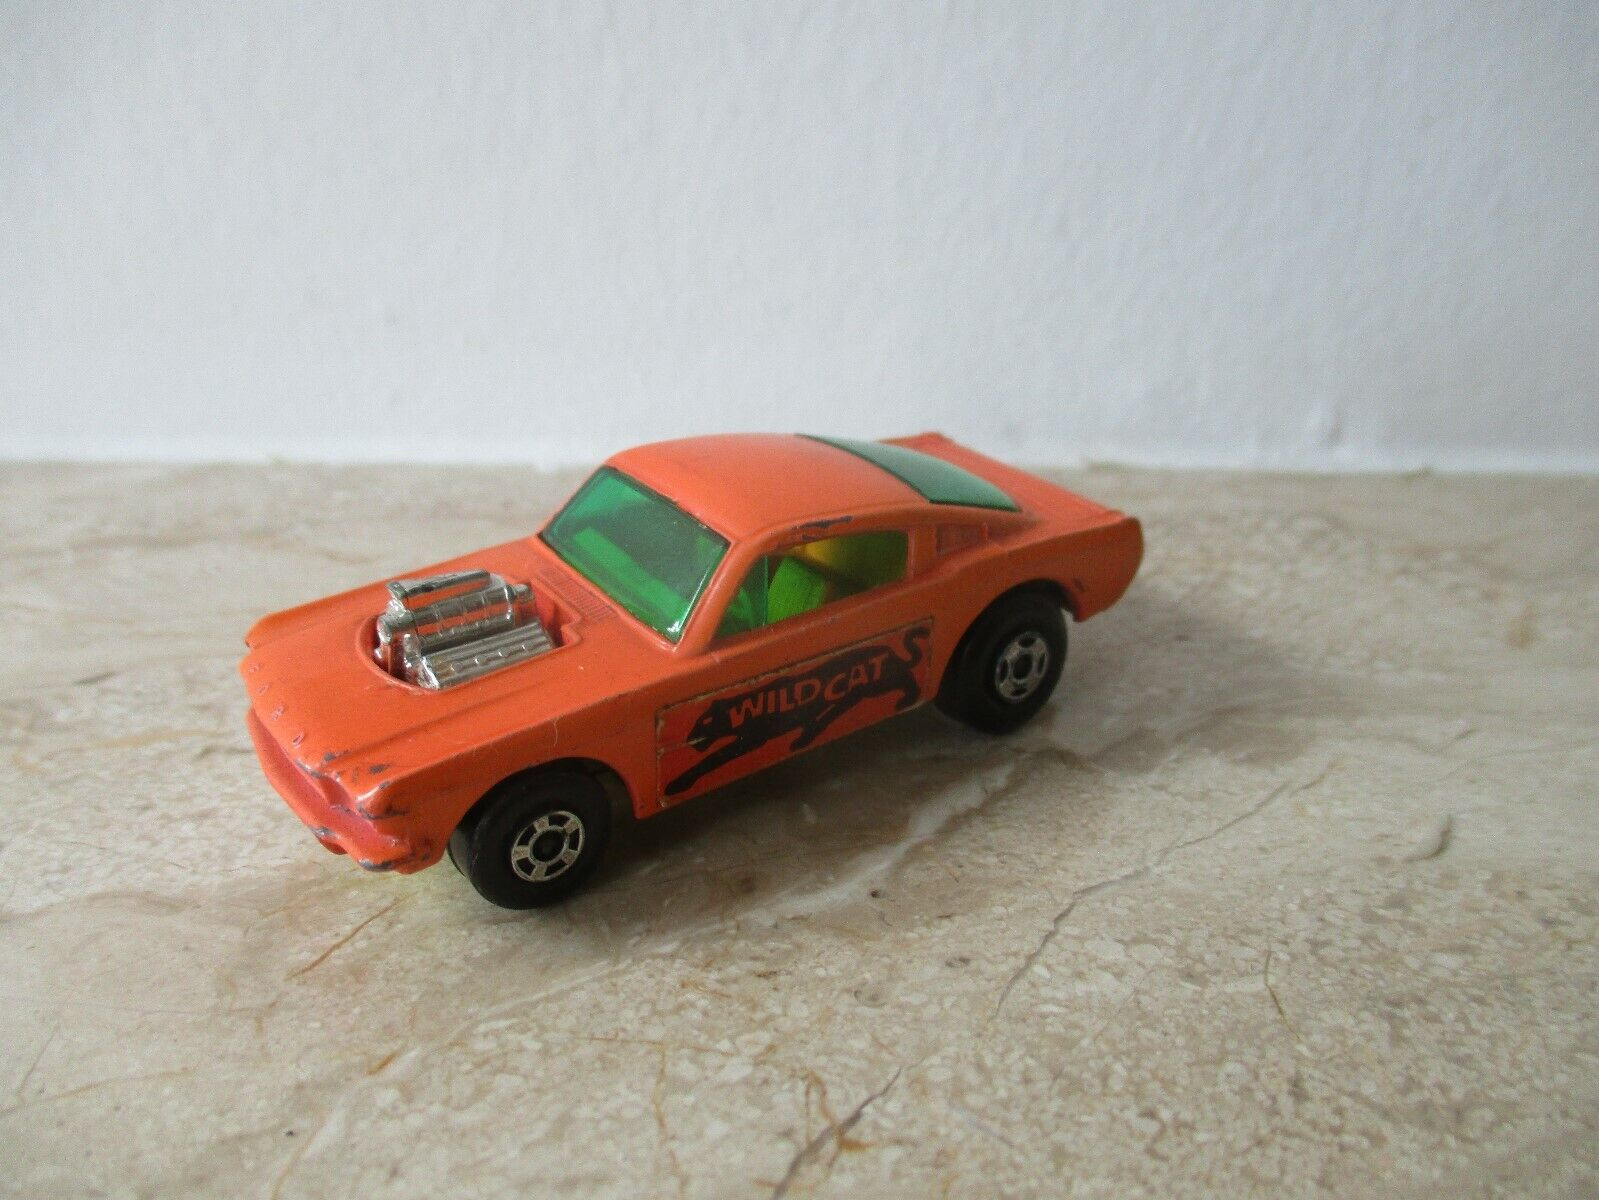 Old Matchbox Superfast No 8 Wildcat Dragster  with jaune BP. 1970 England  bonne qualité